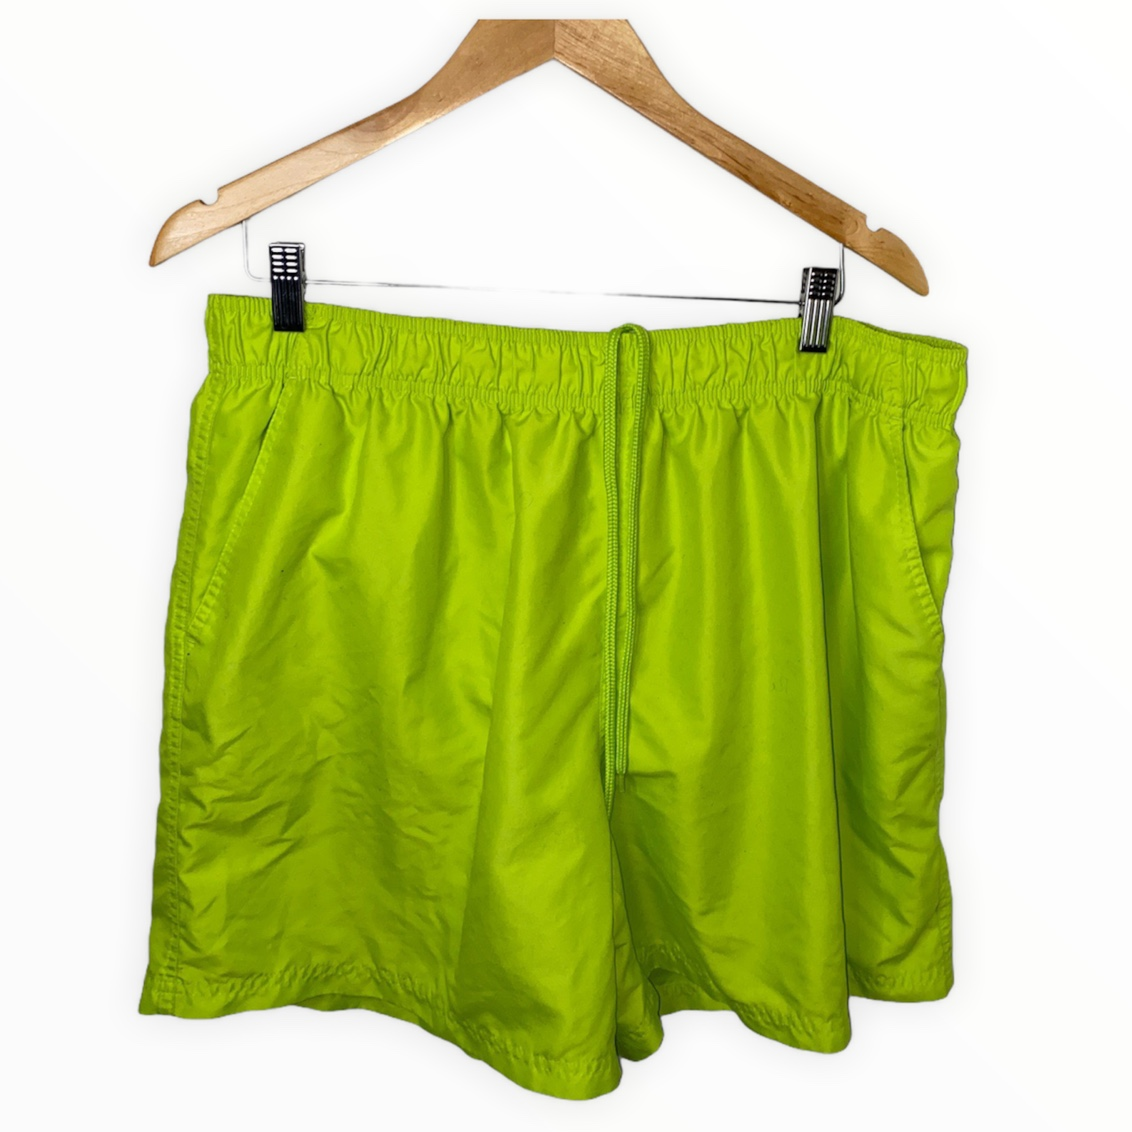 Product Image 1 - Faded Glory Swimming Trunks With